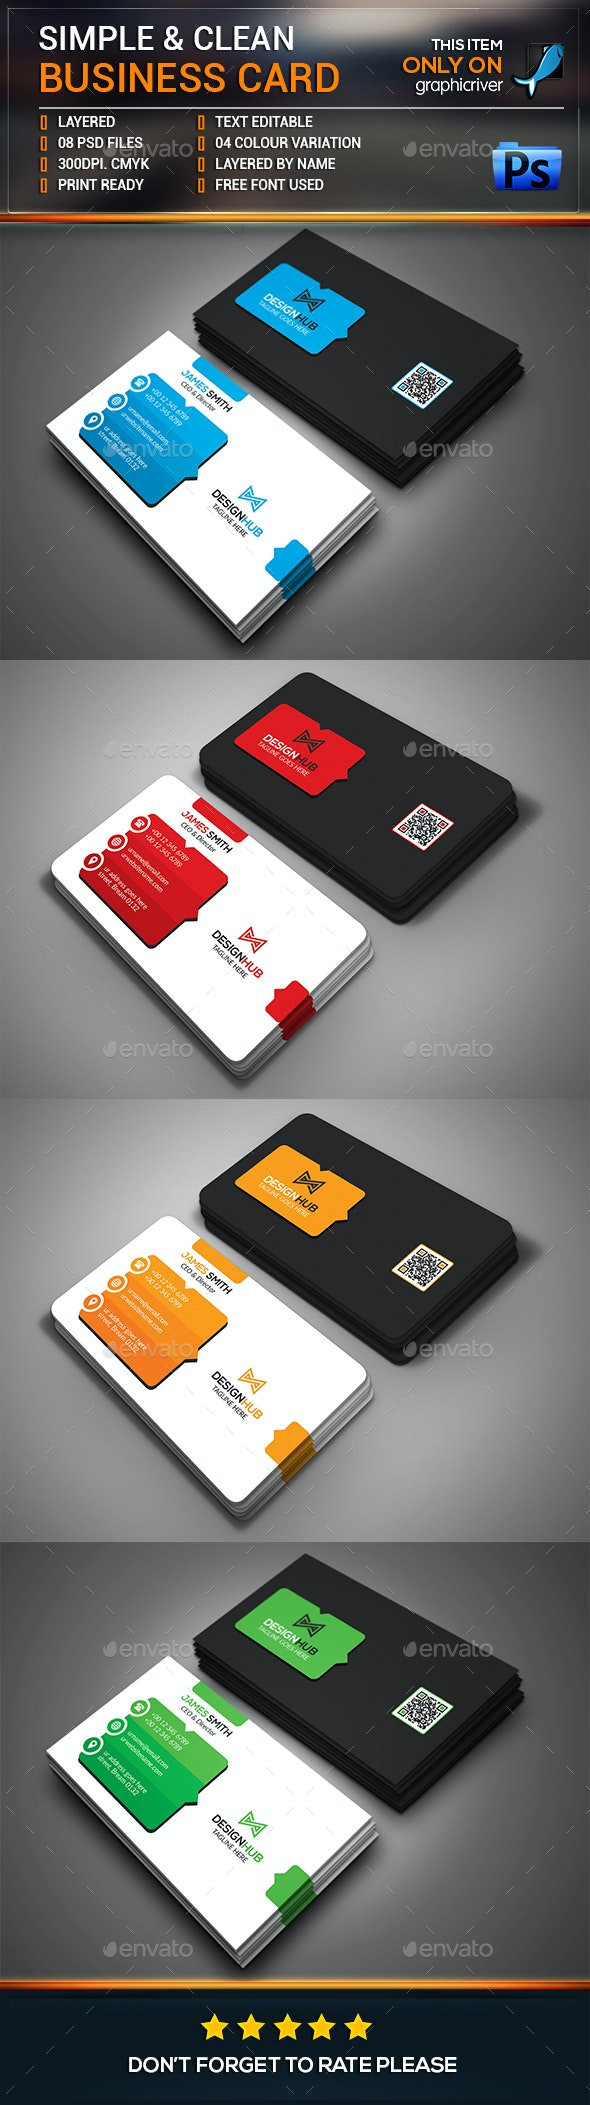 Simple & Clean Business Card - Corporate Business Cards